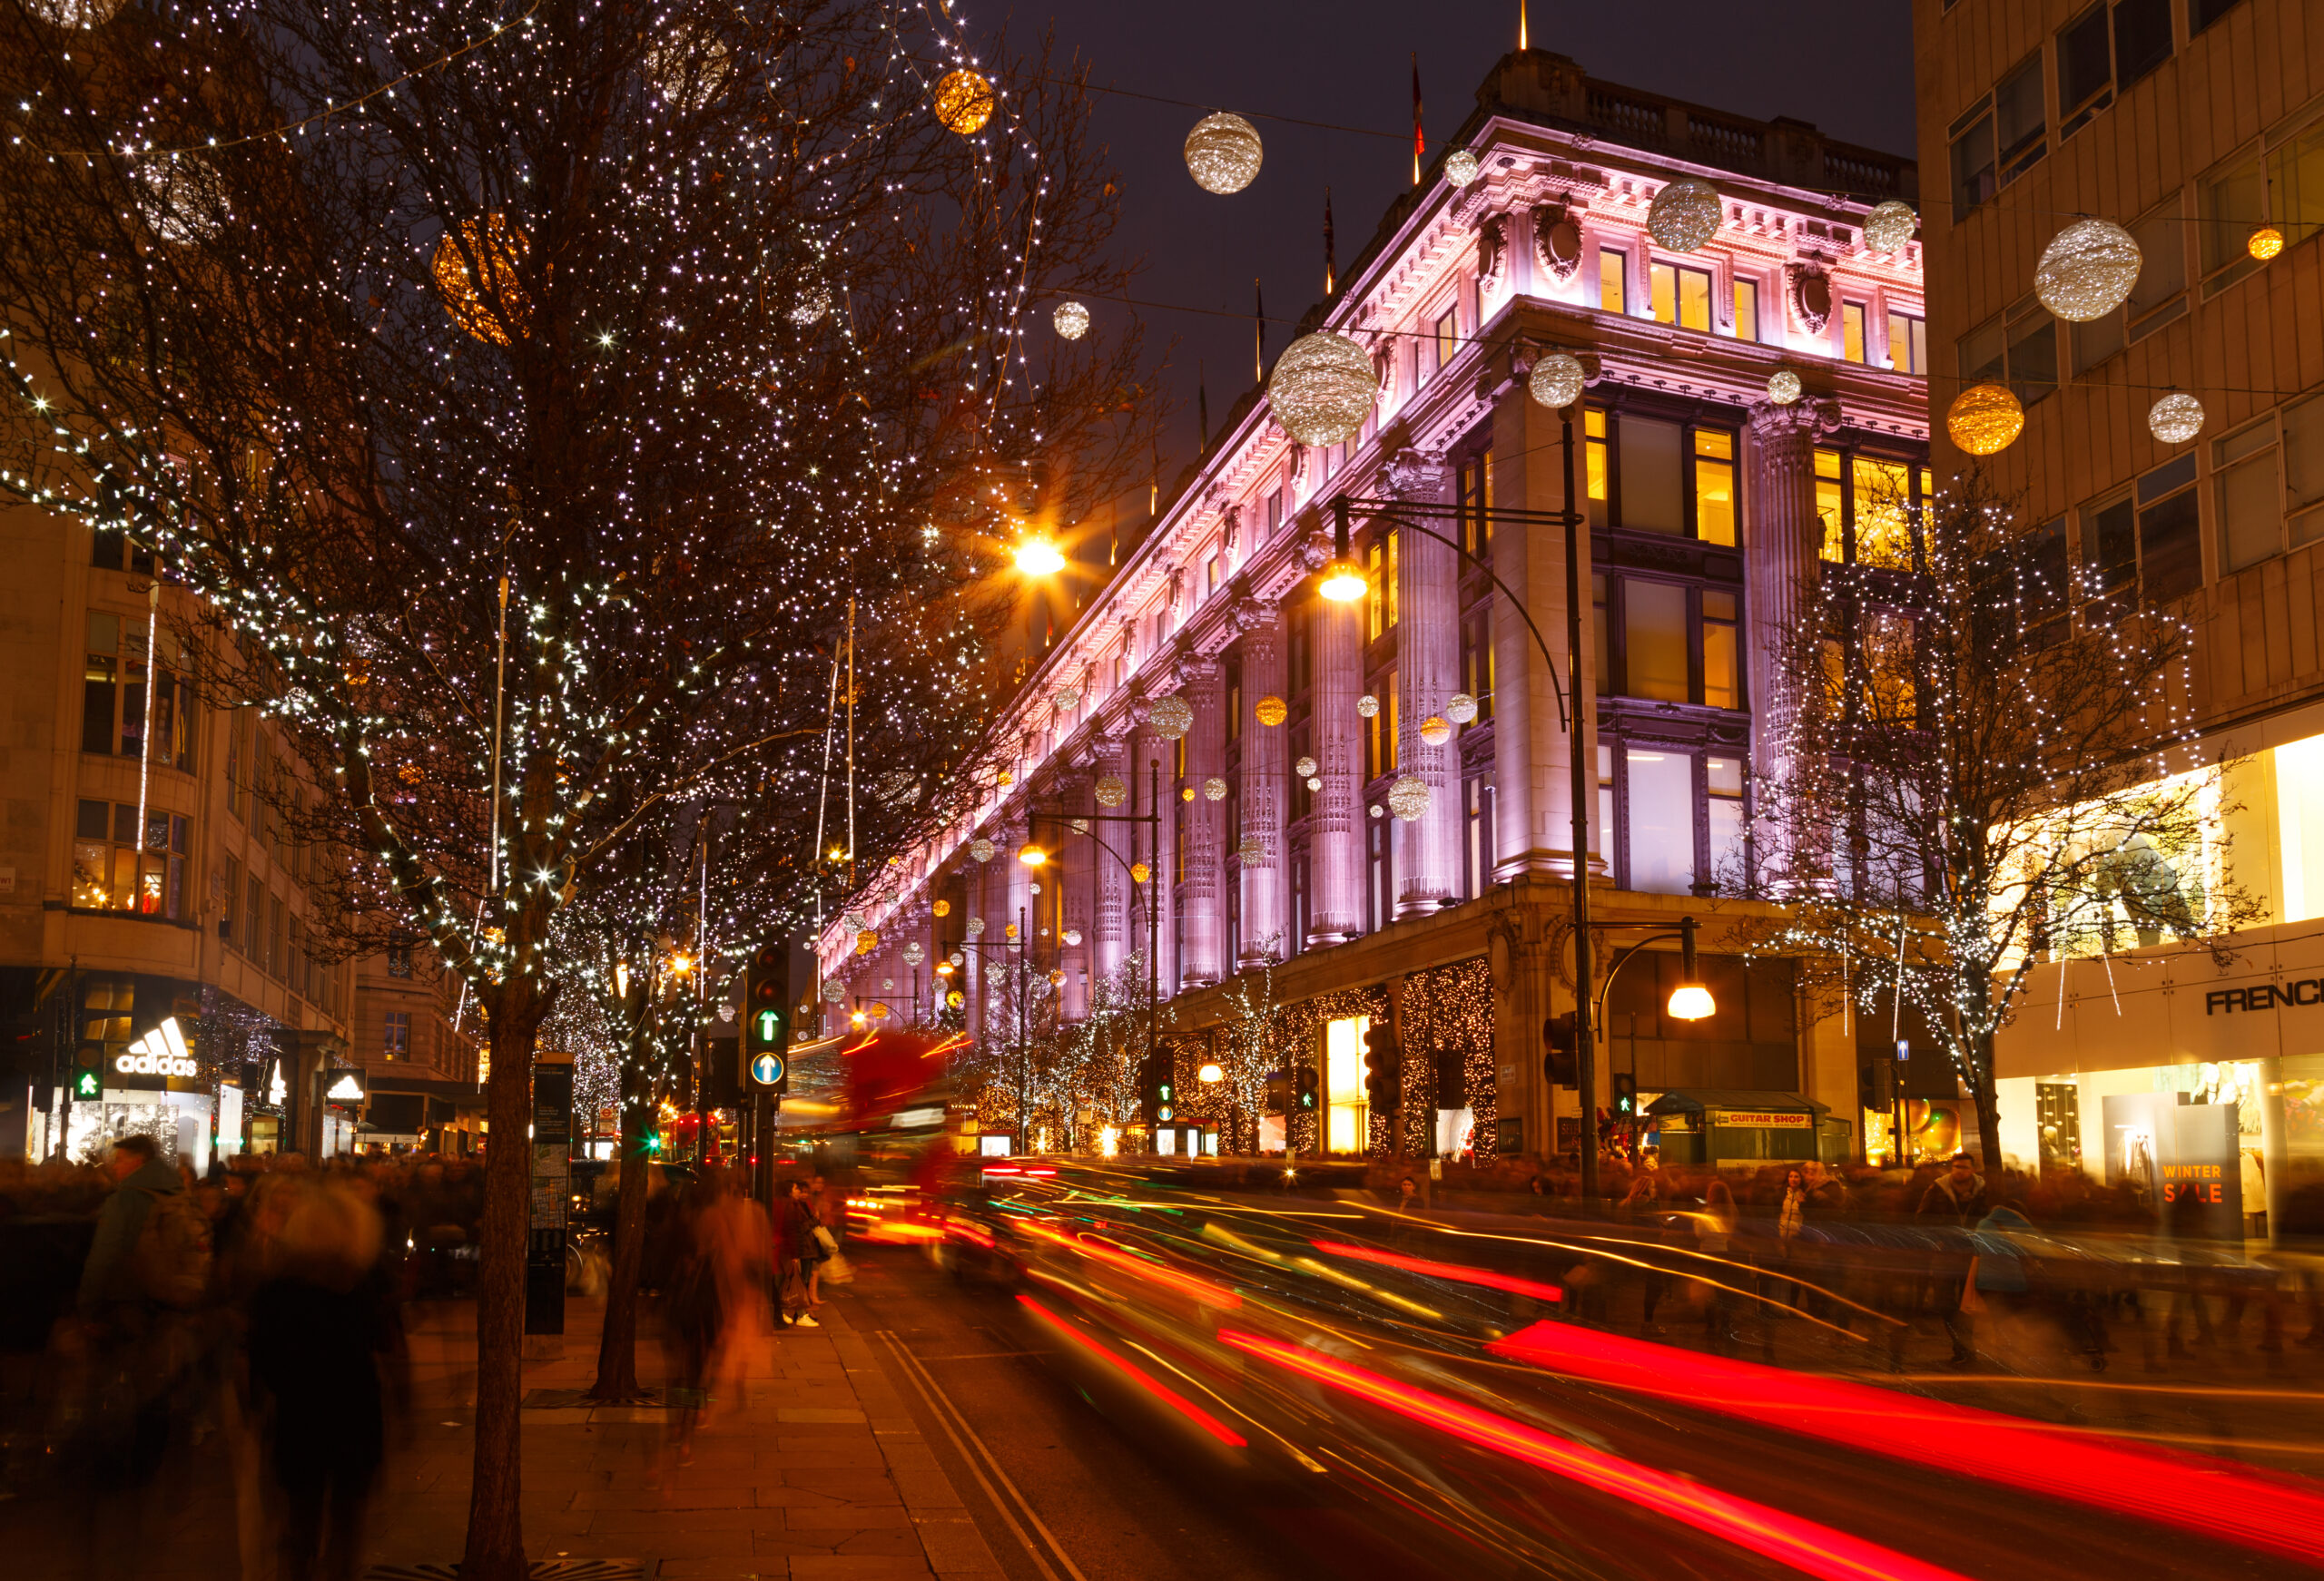 Royal Mail to open a post office in Selfridges this Christmas